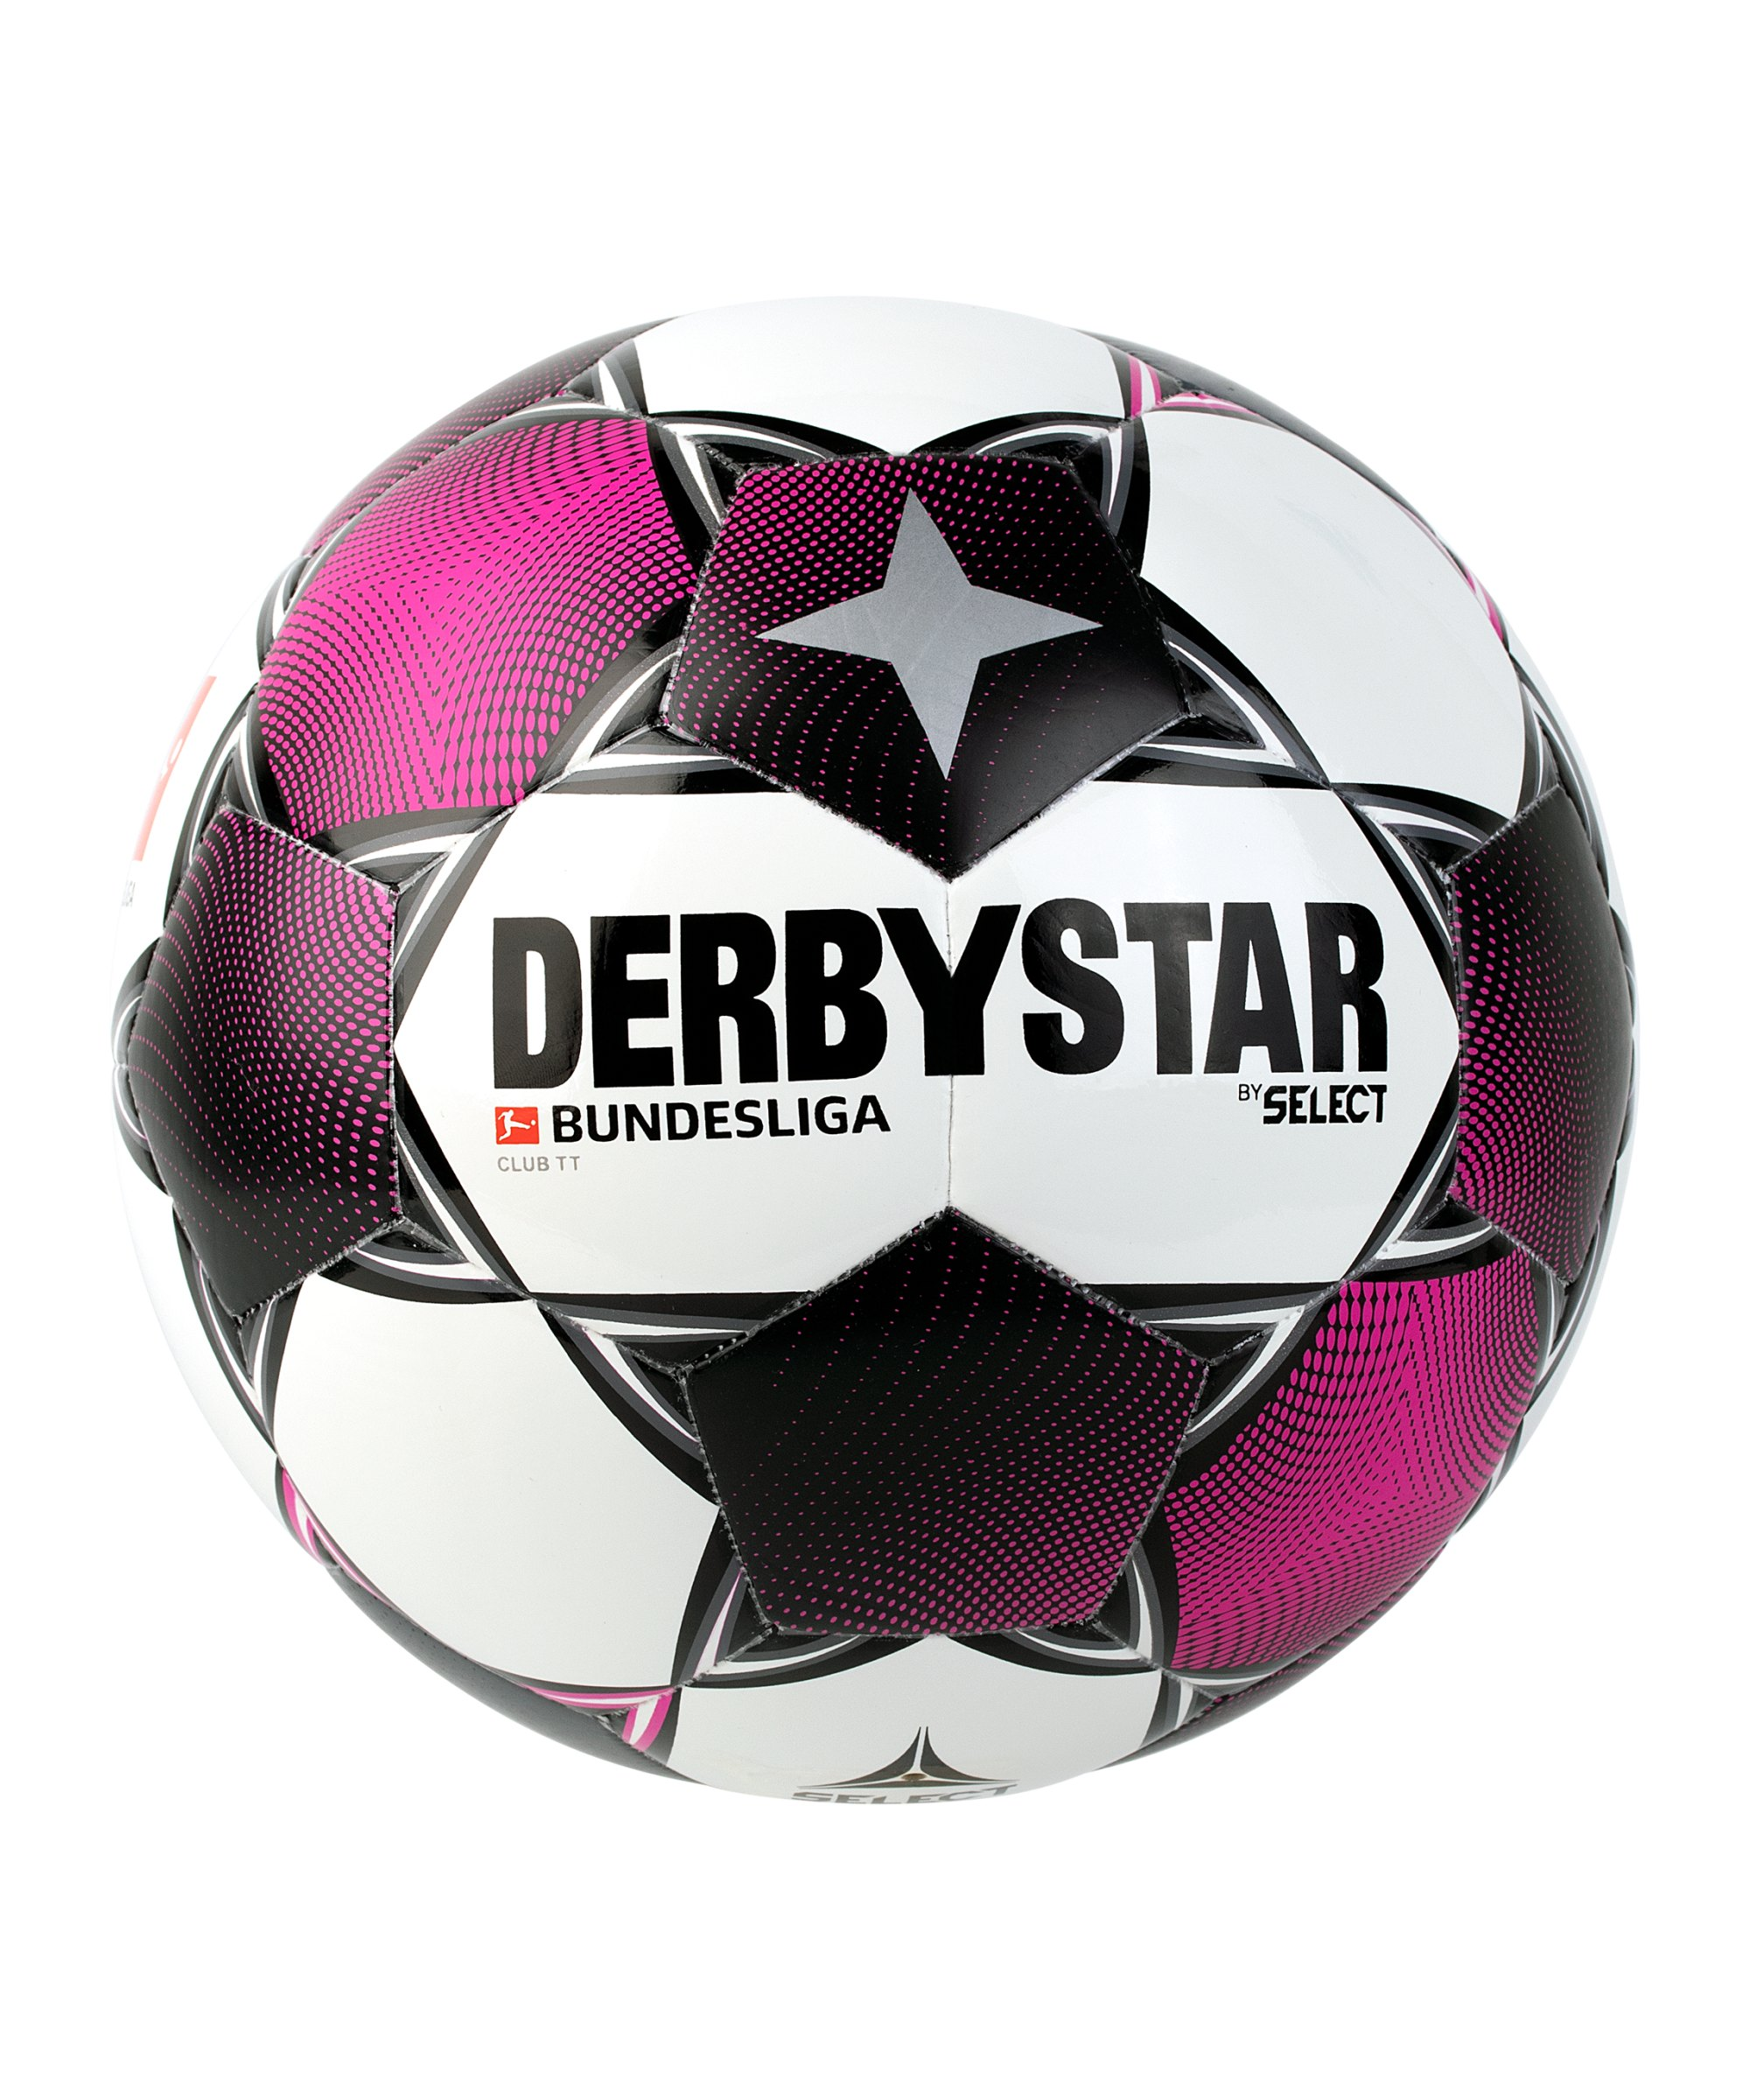 Derbystar Bundesliga Club TT Trainingsball Weiss F020 - weiss